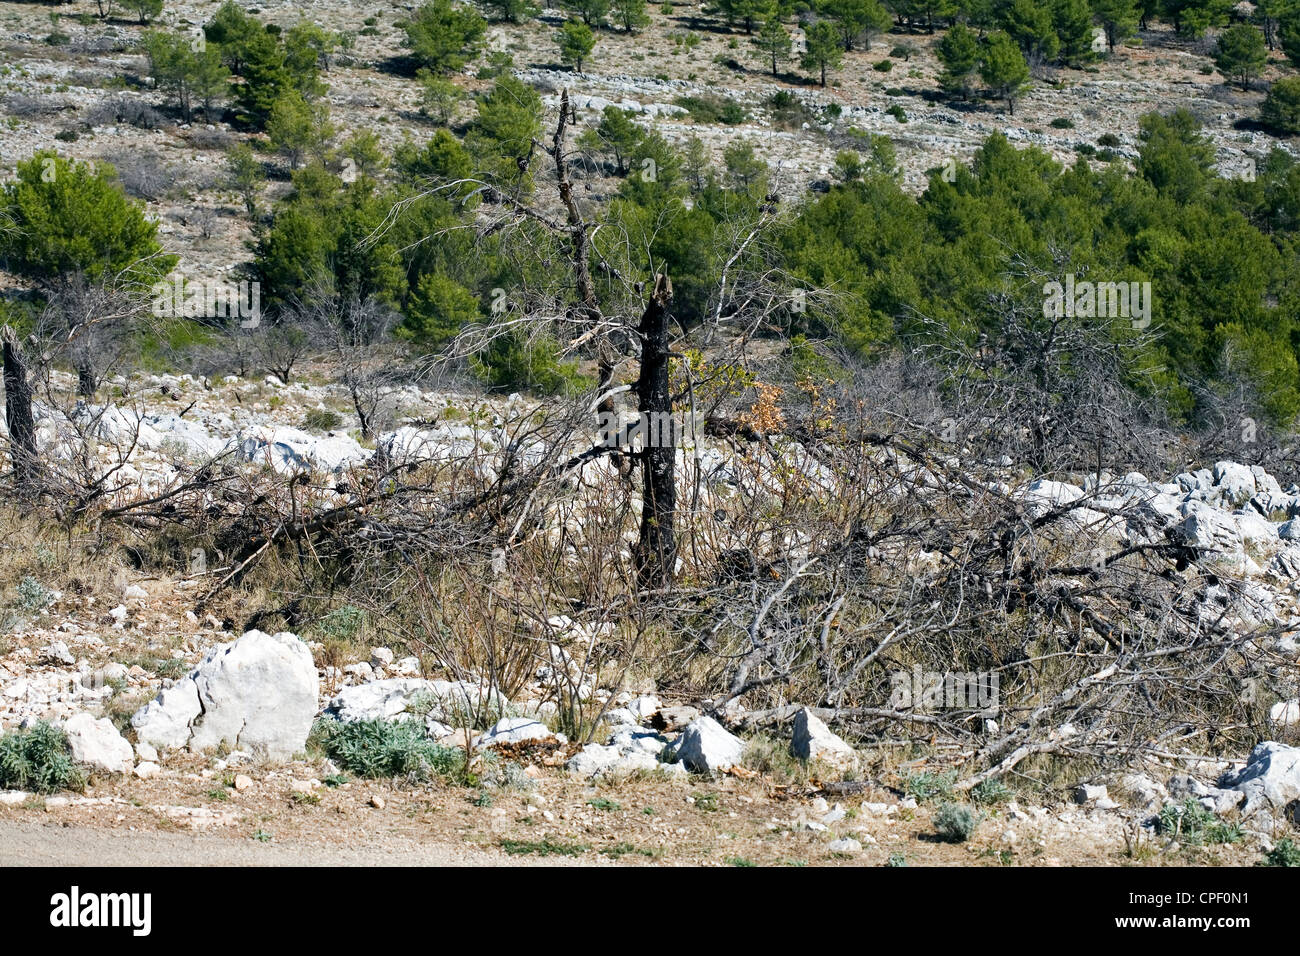 Burnt tree Aleppo Pine possibly from shelling during Croation War Mount Srd above Dubrovnik Dalmatia Croatia - Stock Image